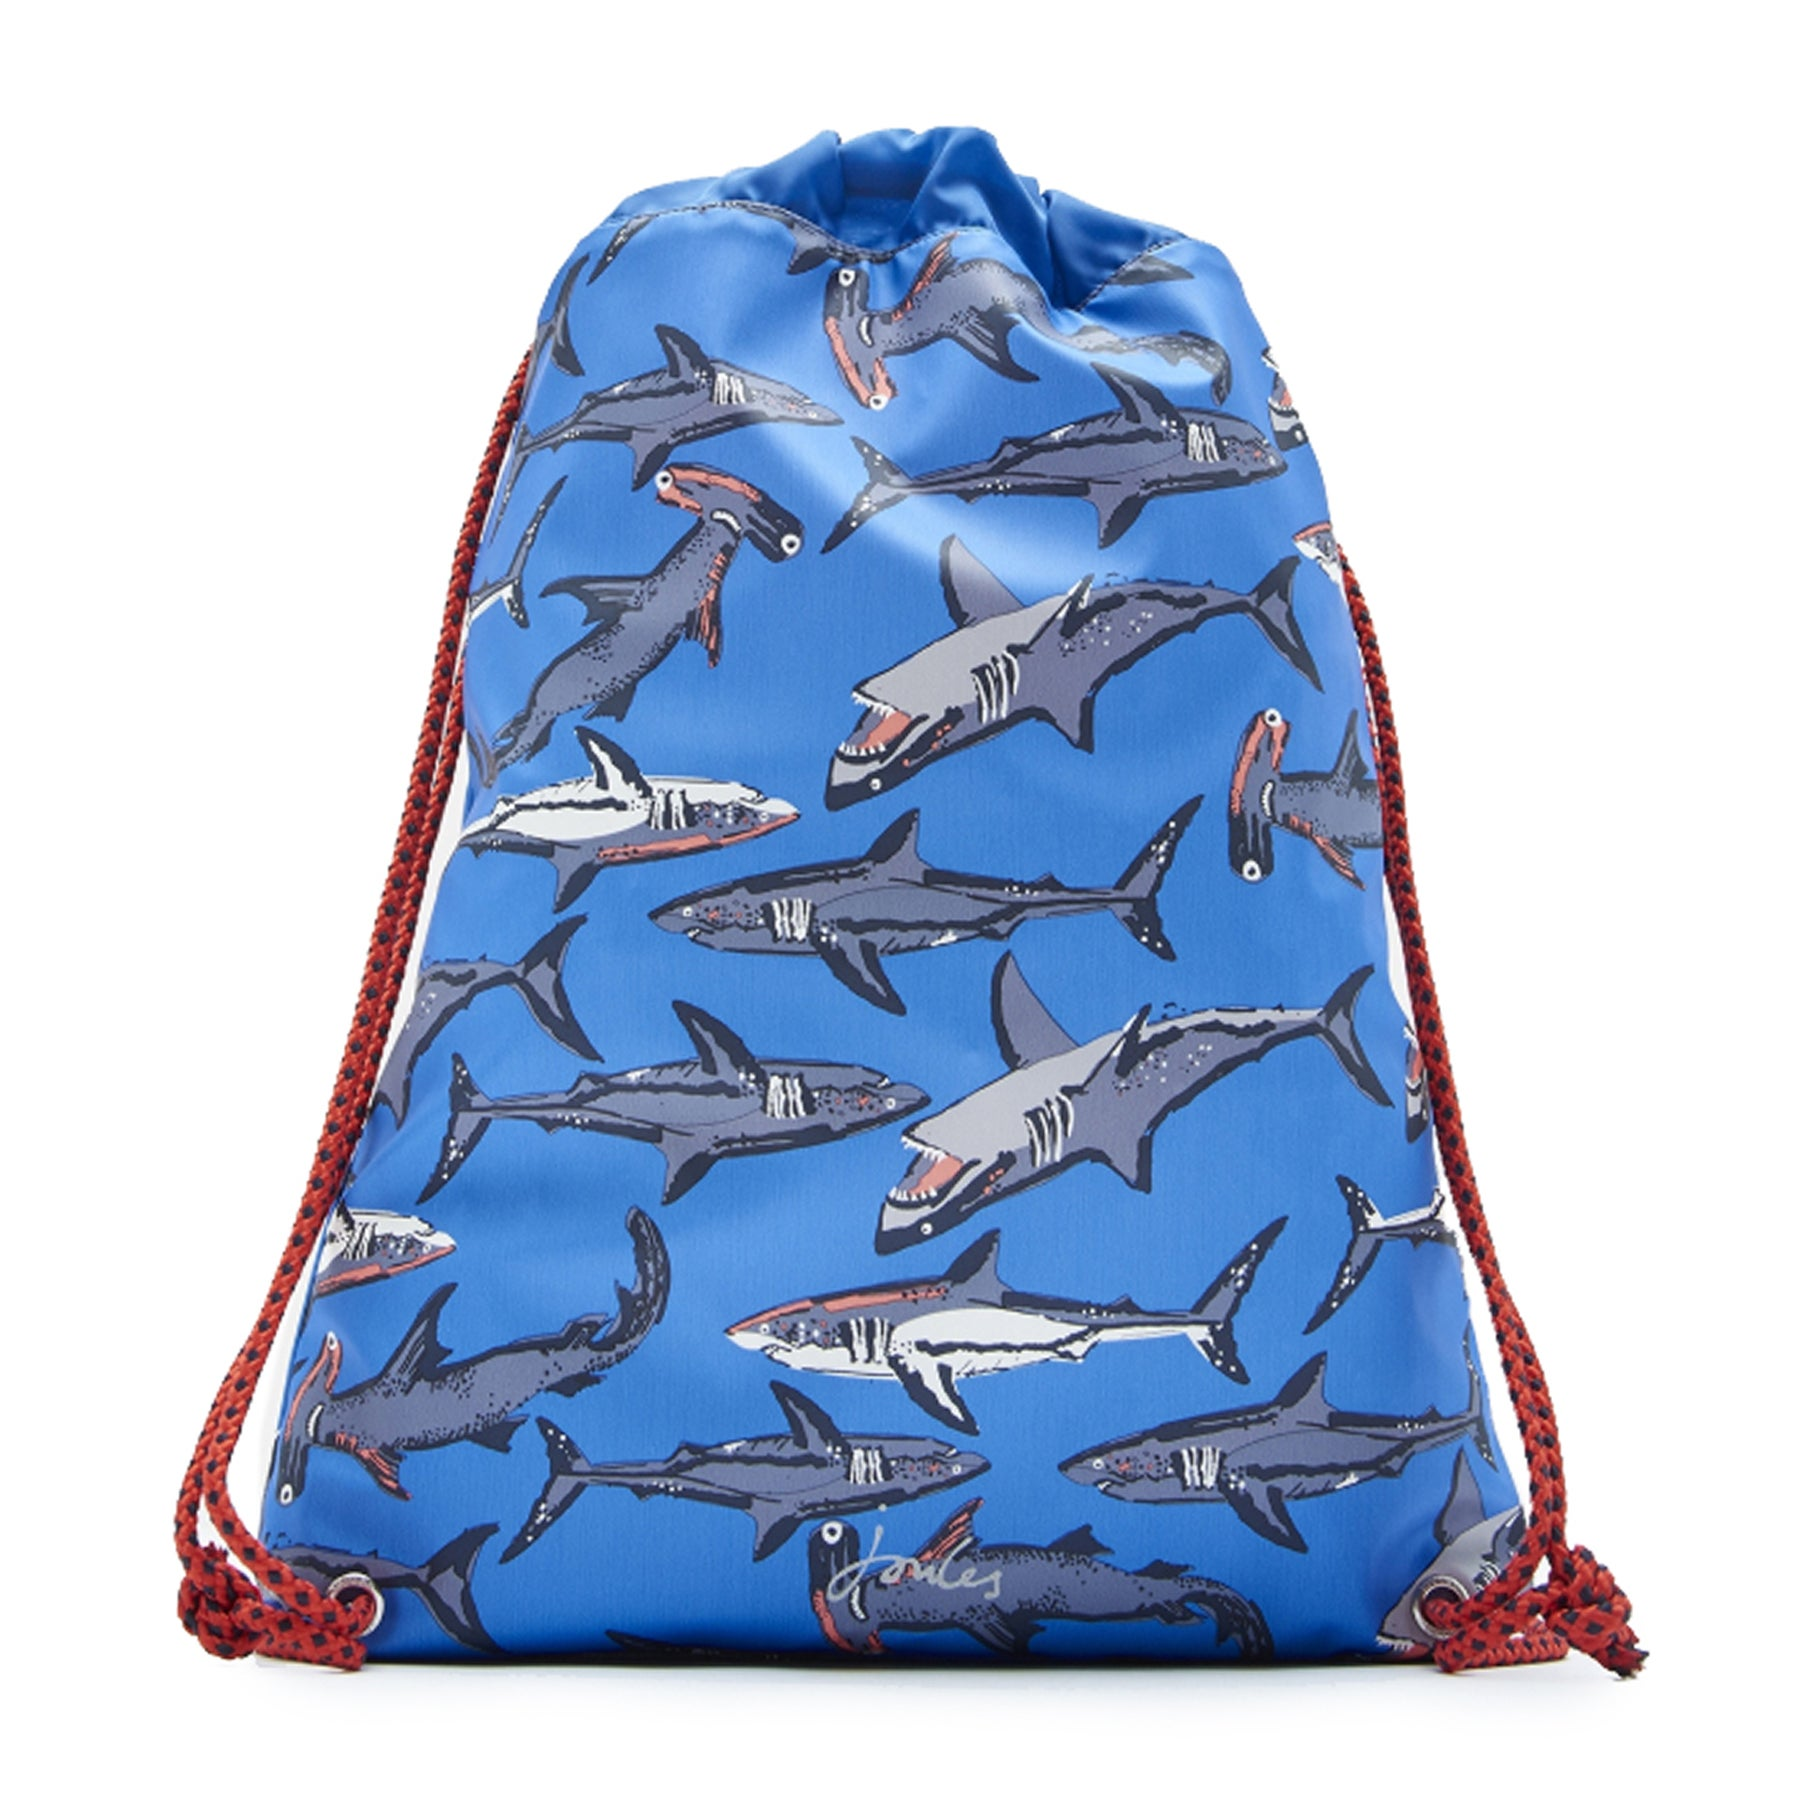 Joules Rubber Bag Boys Backpack - Blue Sharks